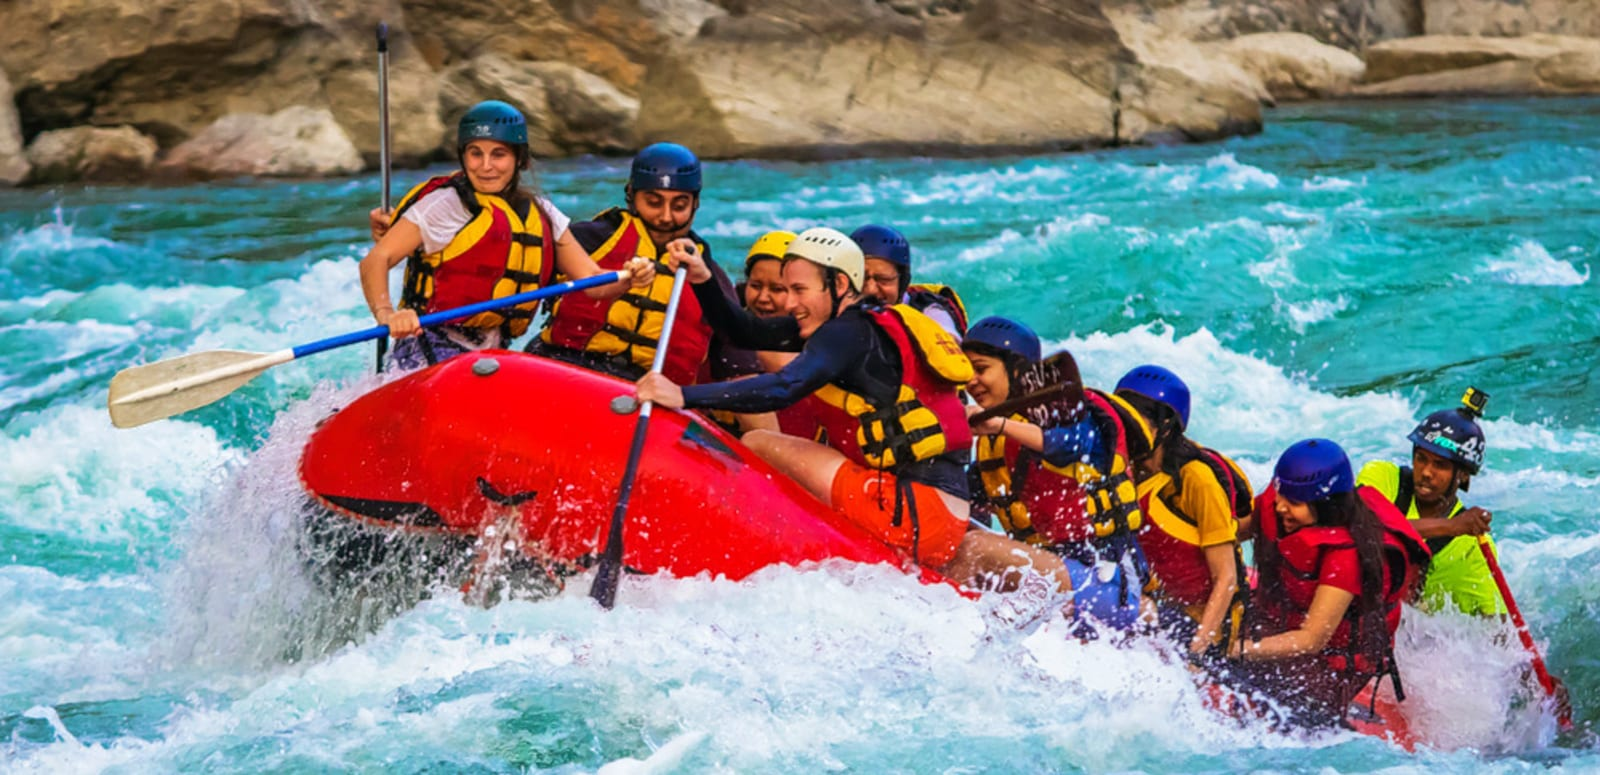 River Rafting in Manali: A Detailed Guide